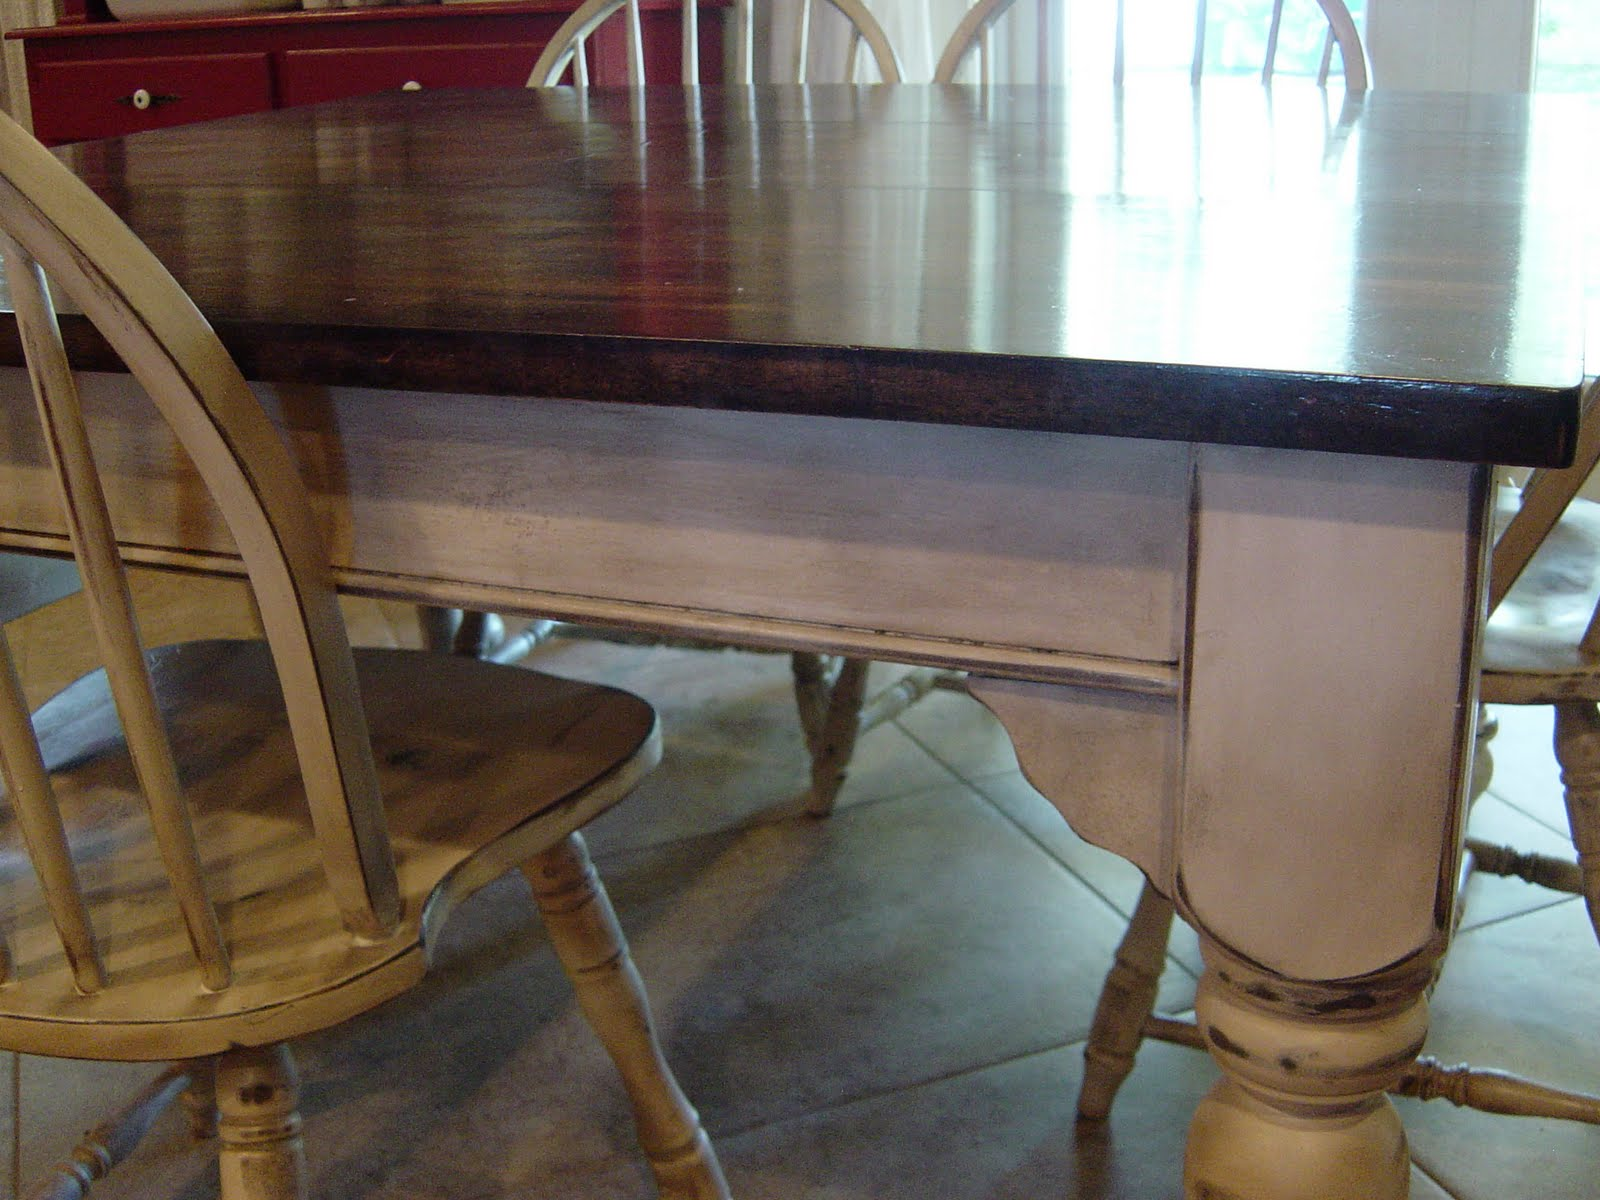 Remodelaholic | Kitchen Table Refinished With Distressed Look